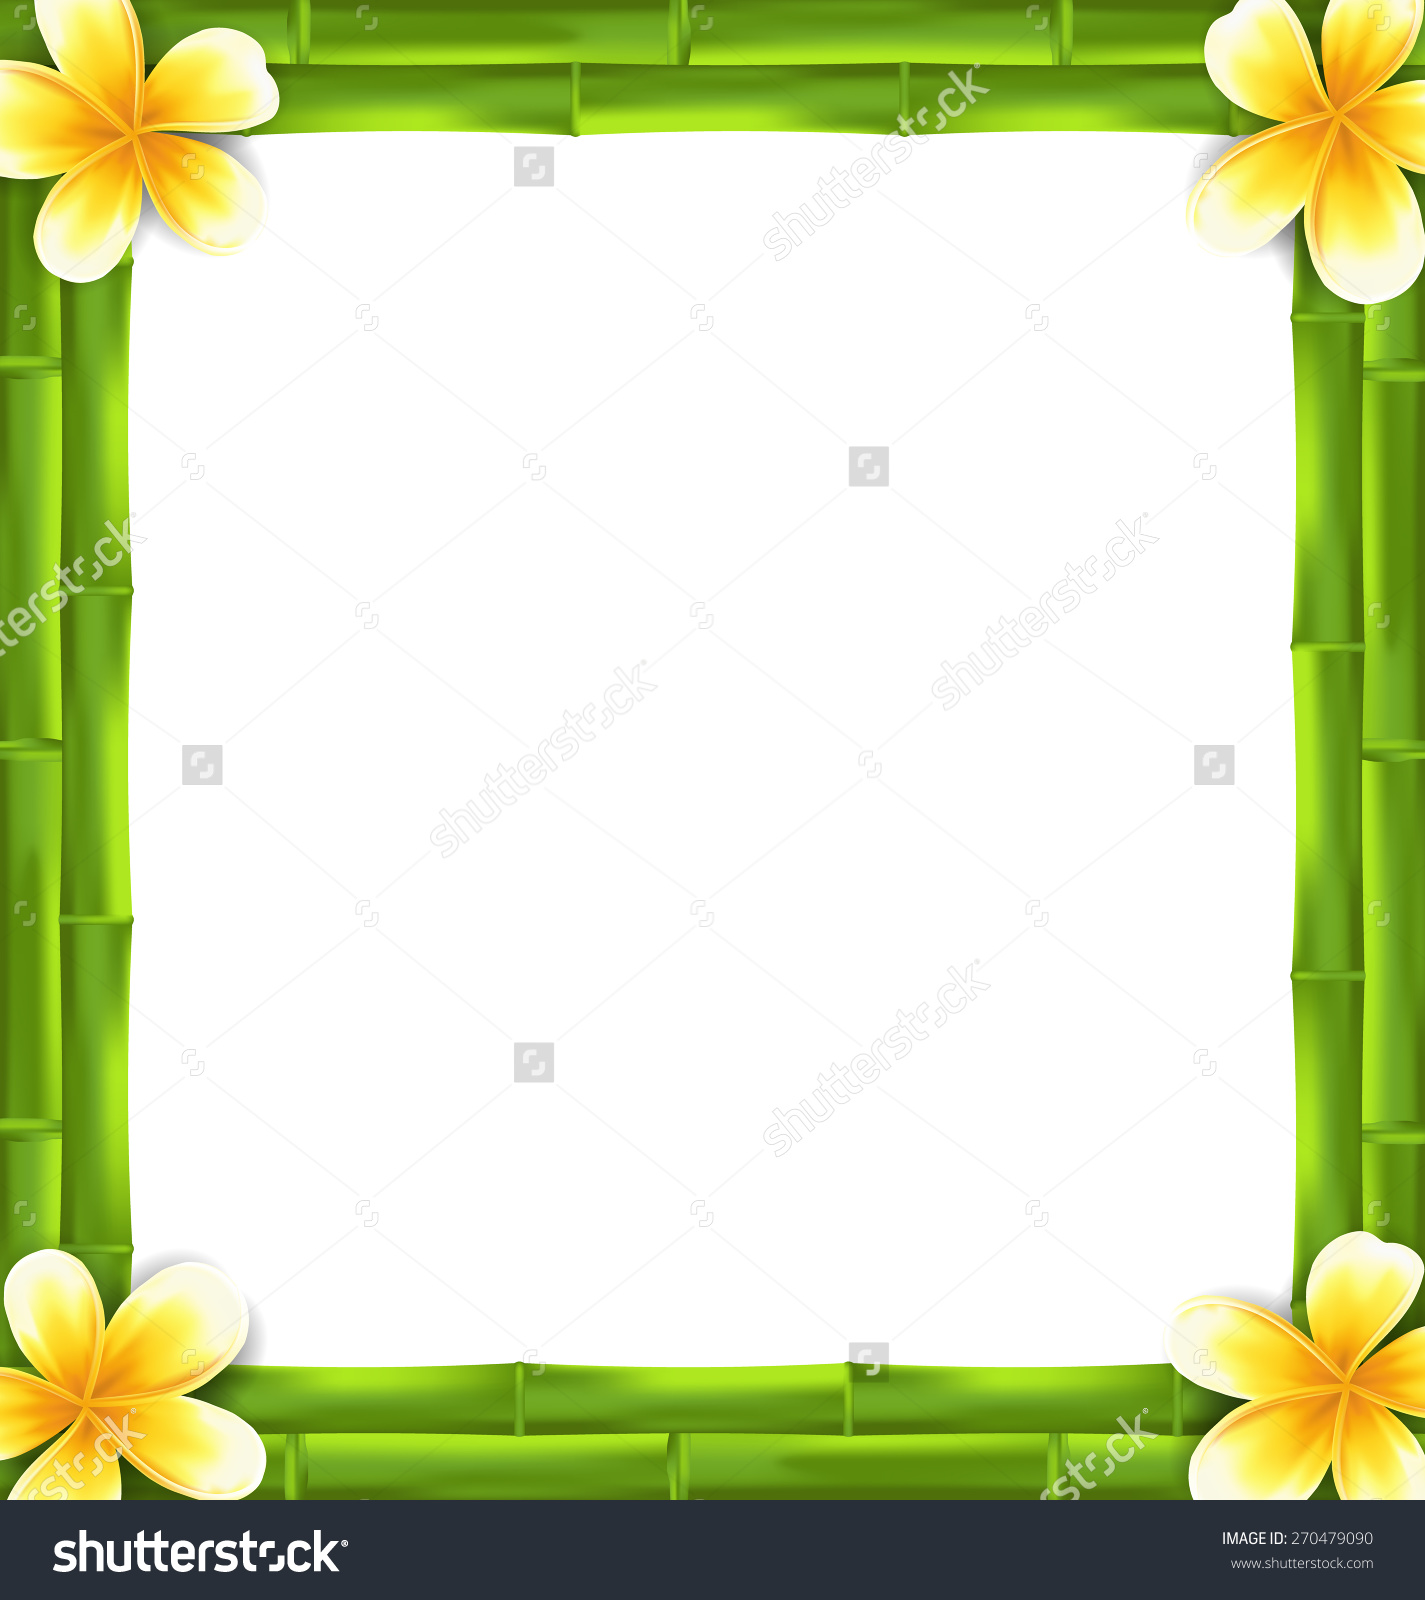 Natural frame clipart - Clipground